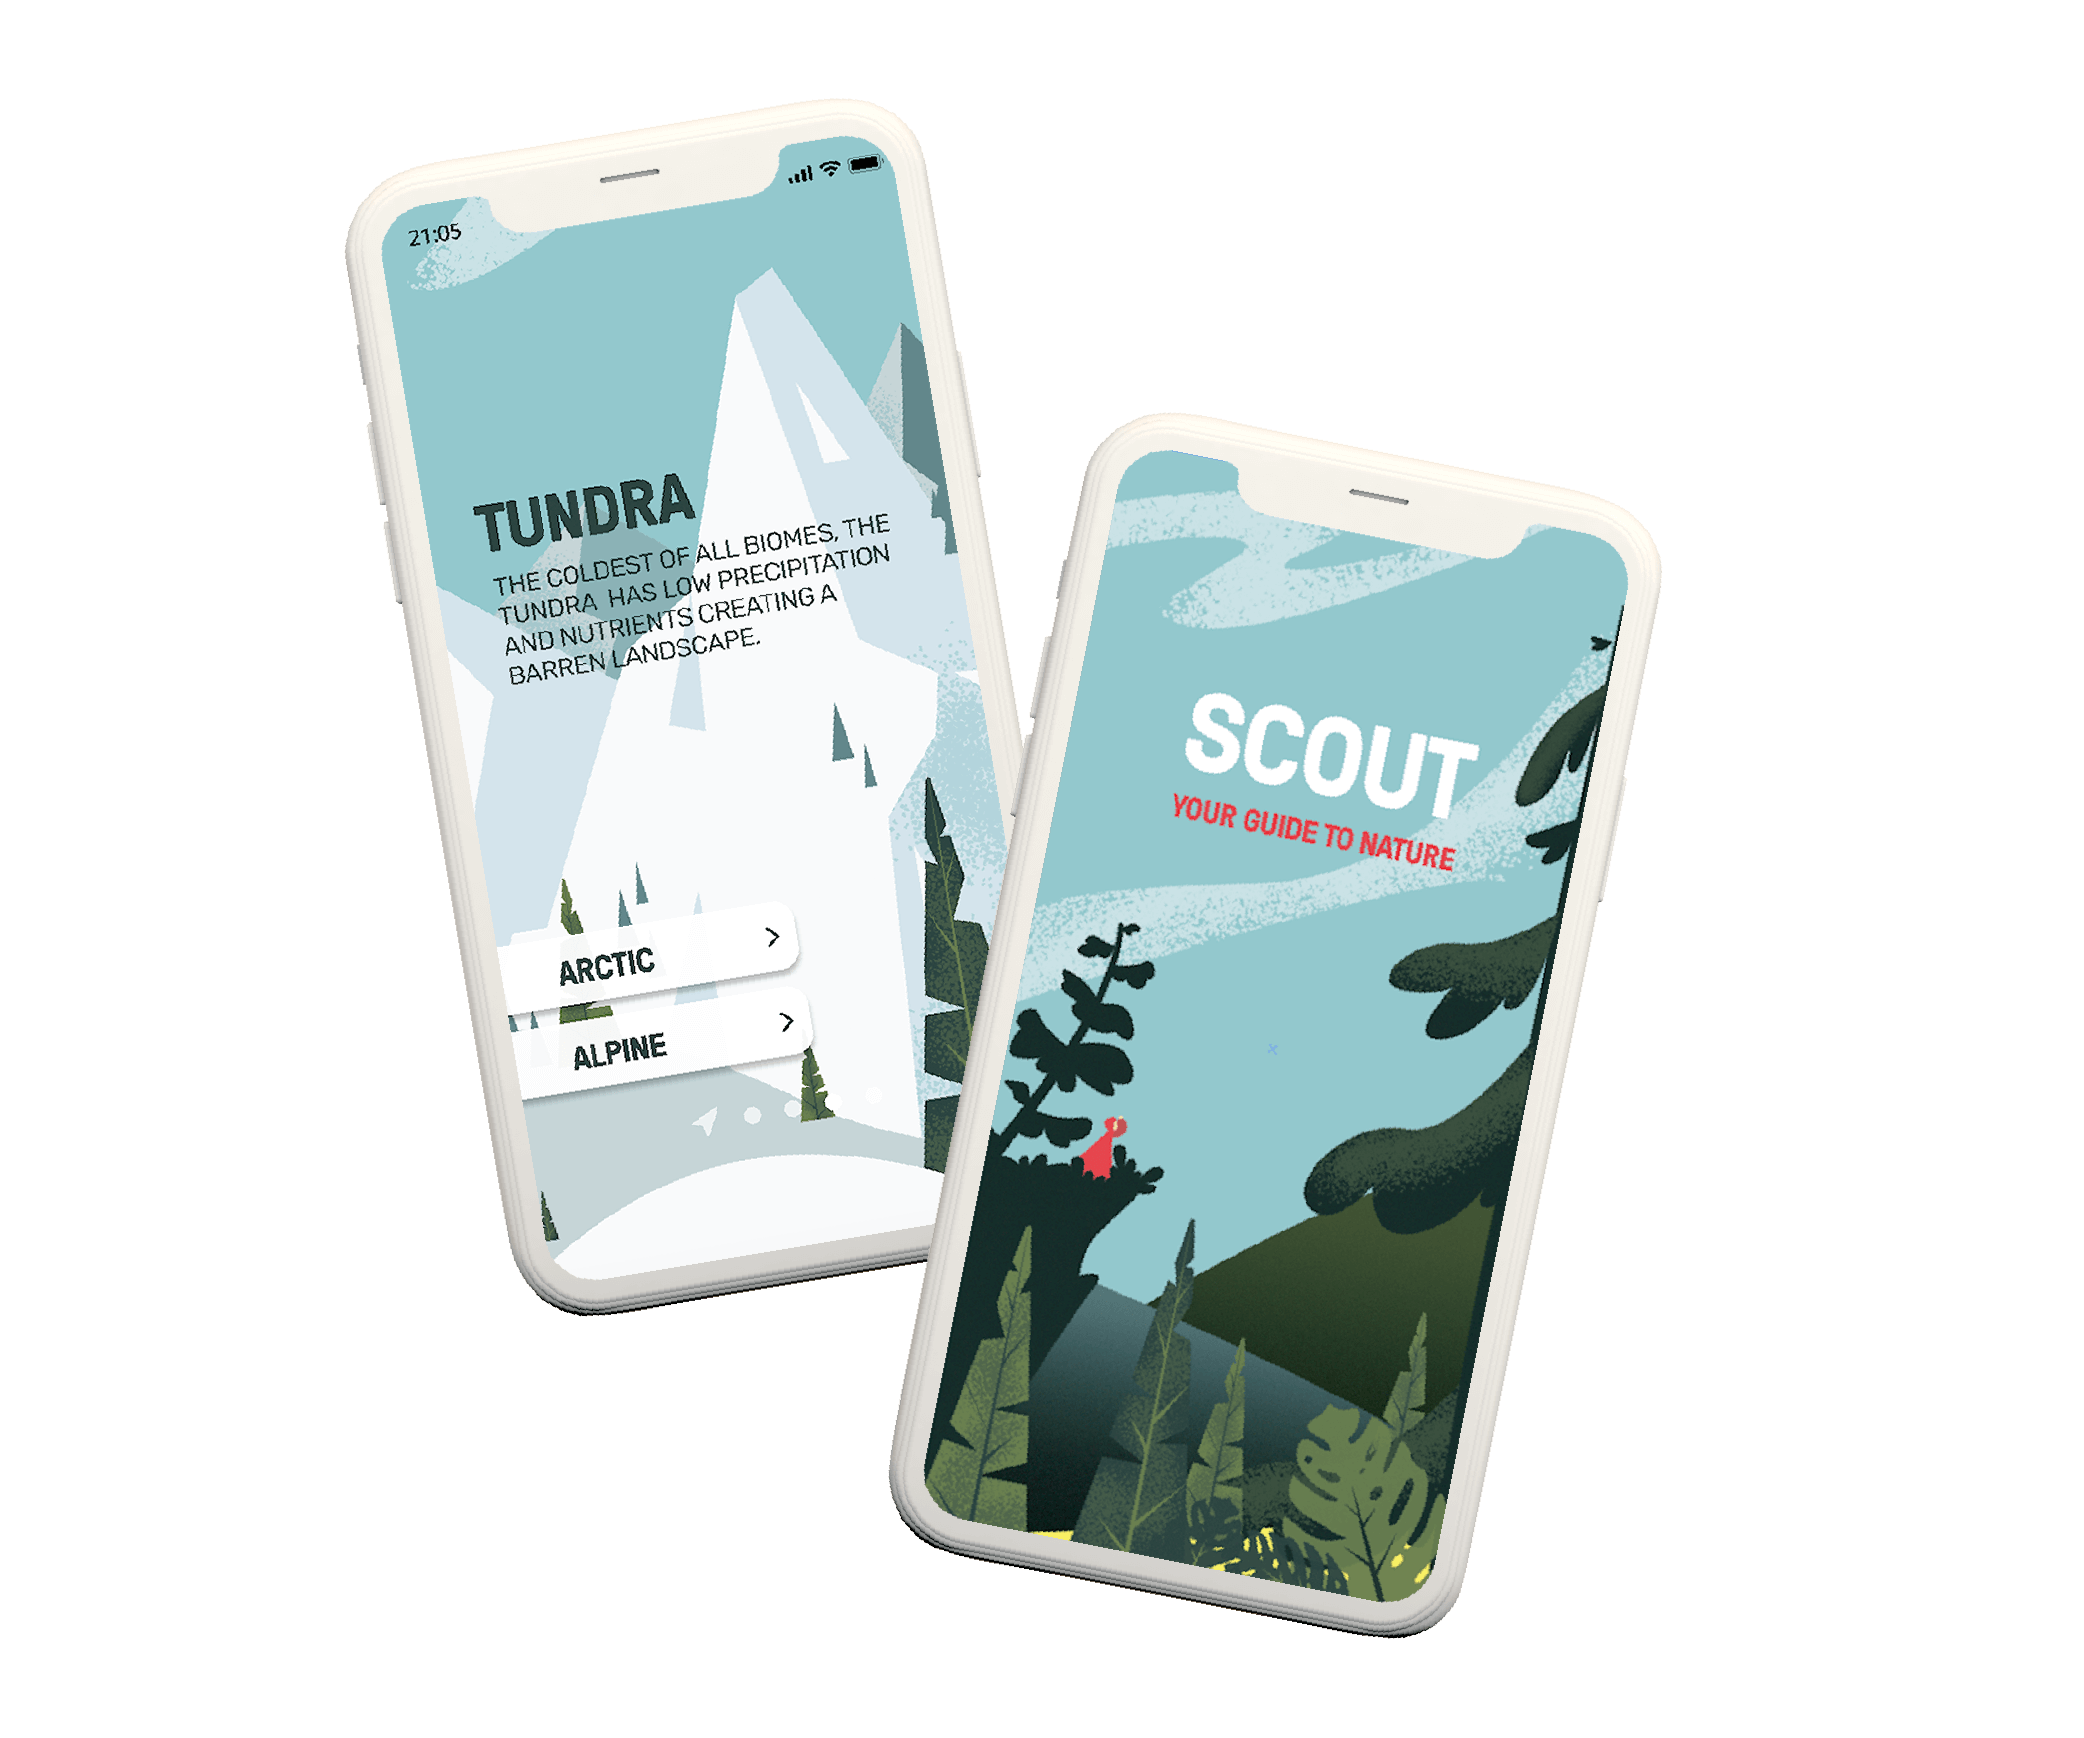 scout-01